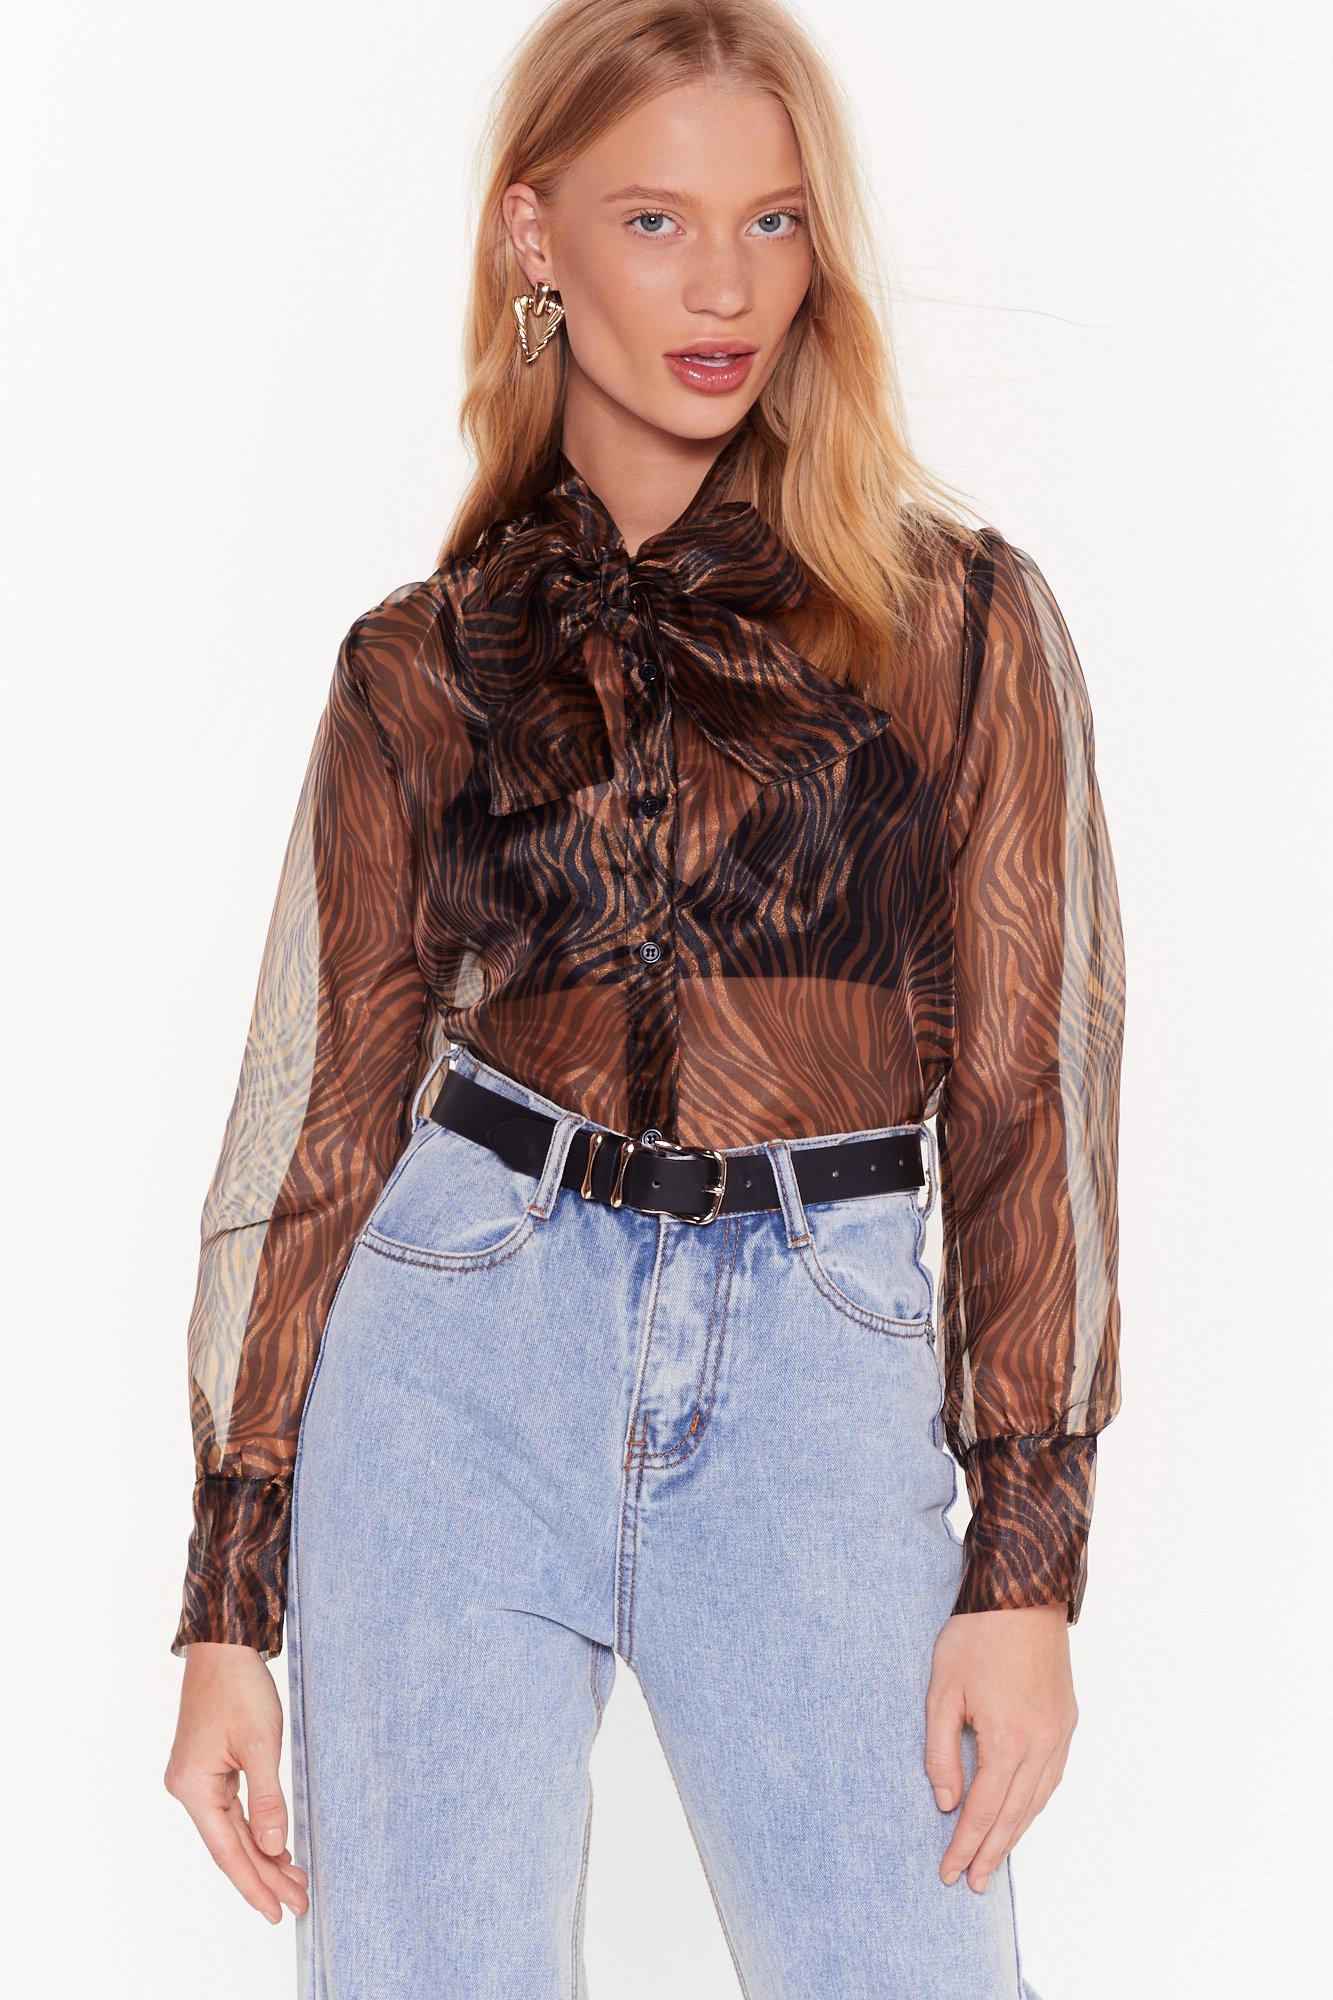 Image of Wild Here Wild Now Tiger Organza Blouse